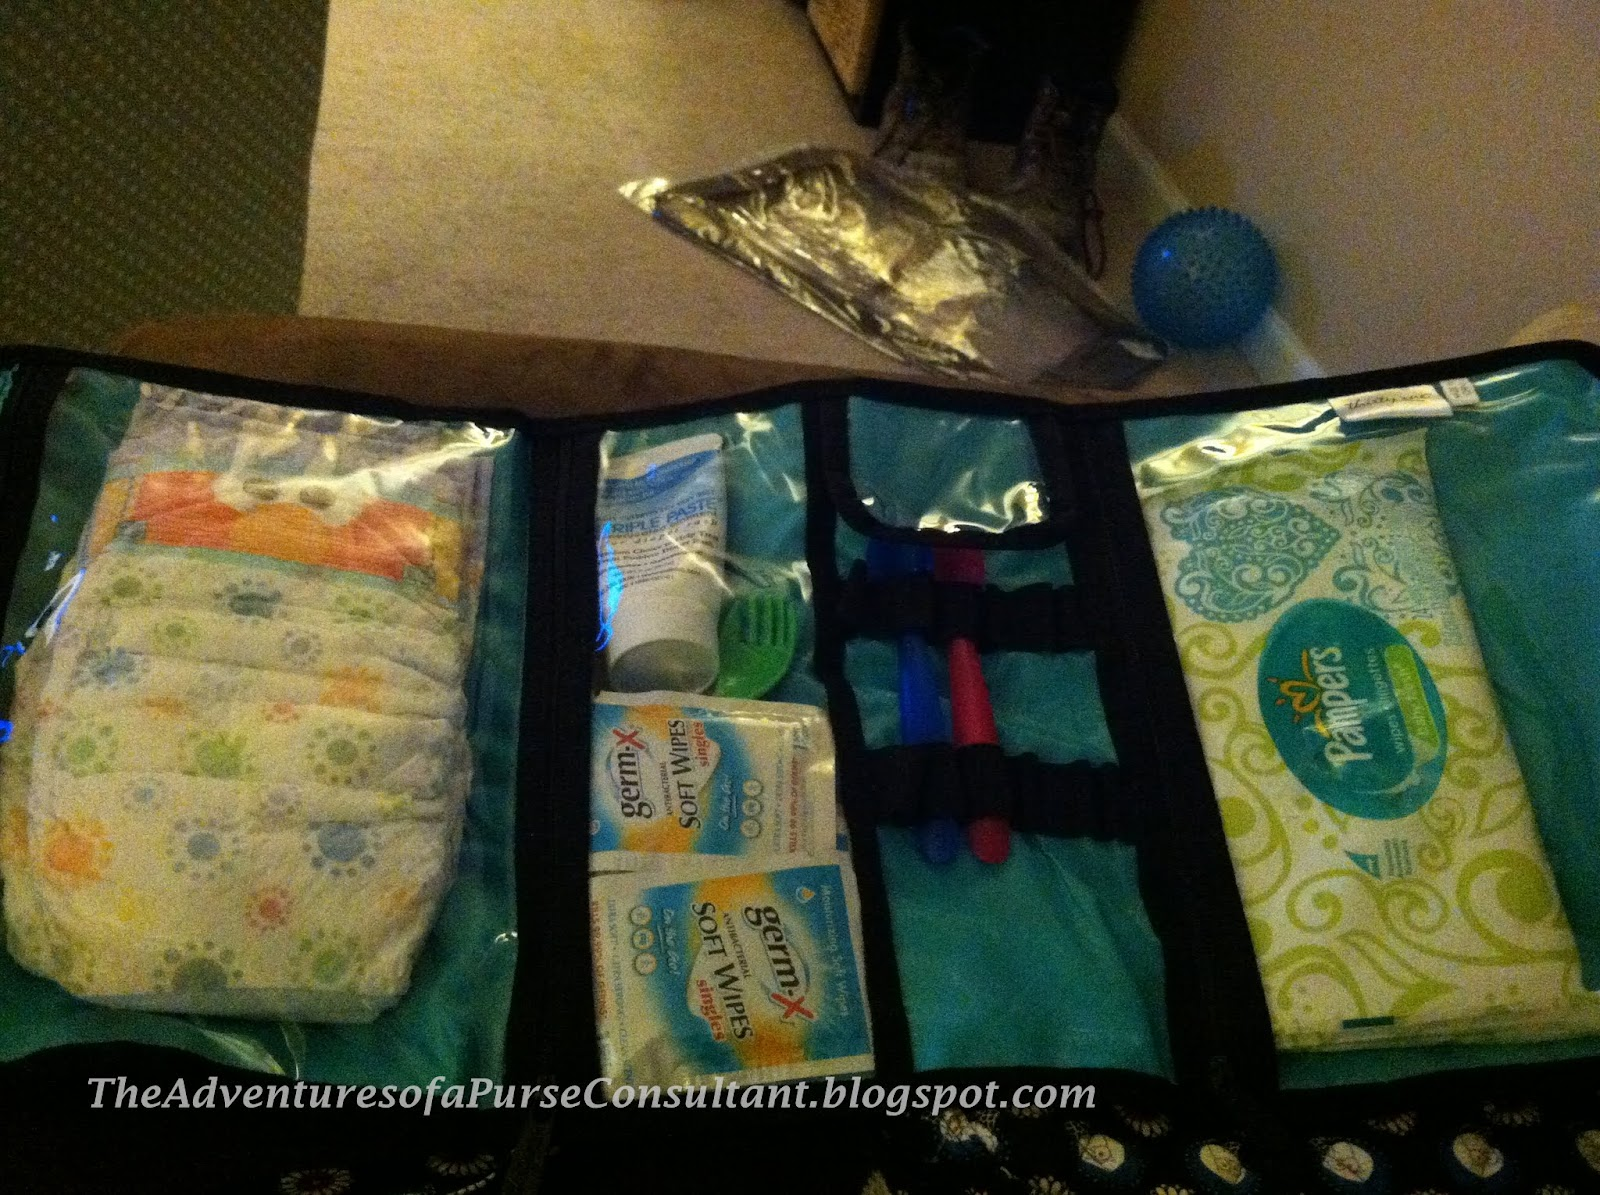 Nix The Diaper Bag And Use A Timeless Beauty Instead